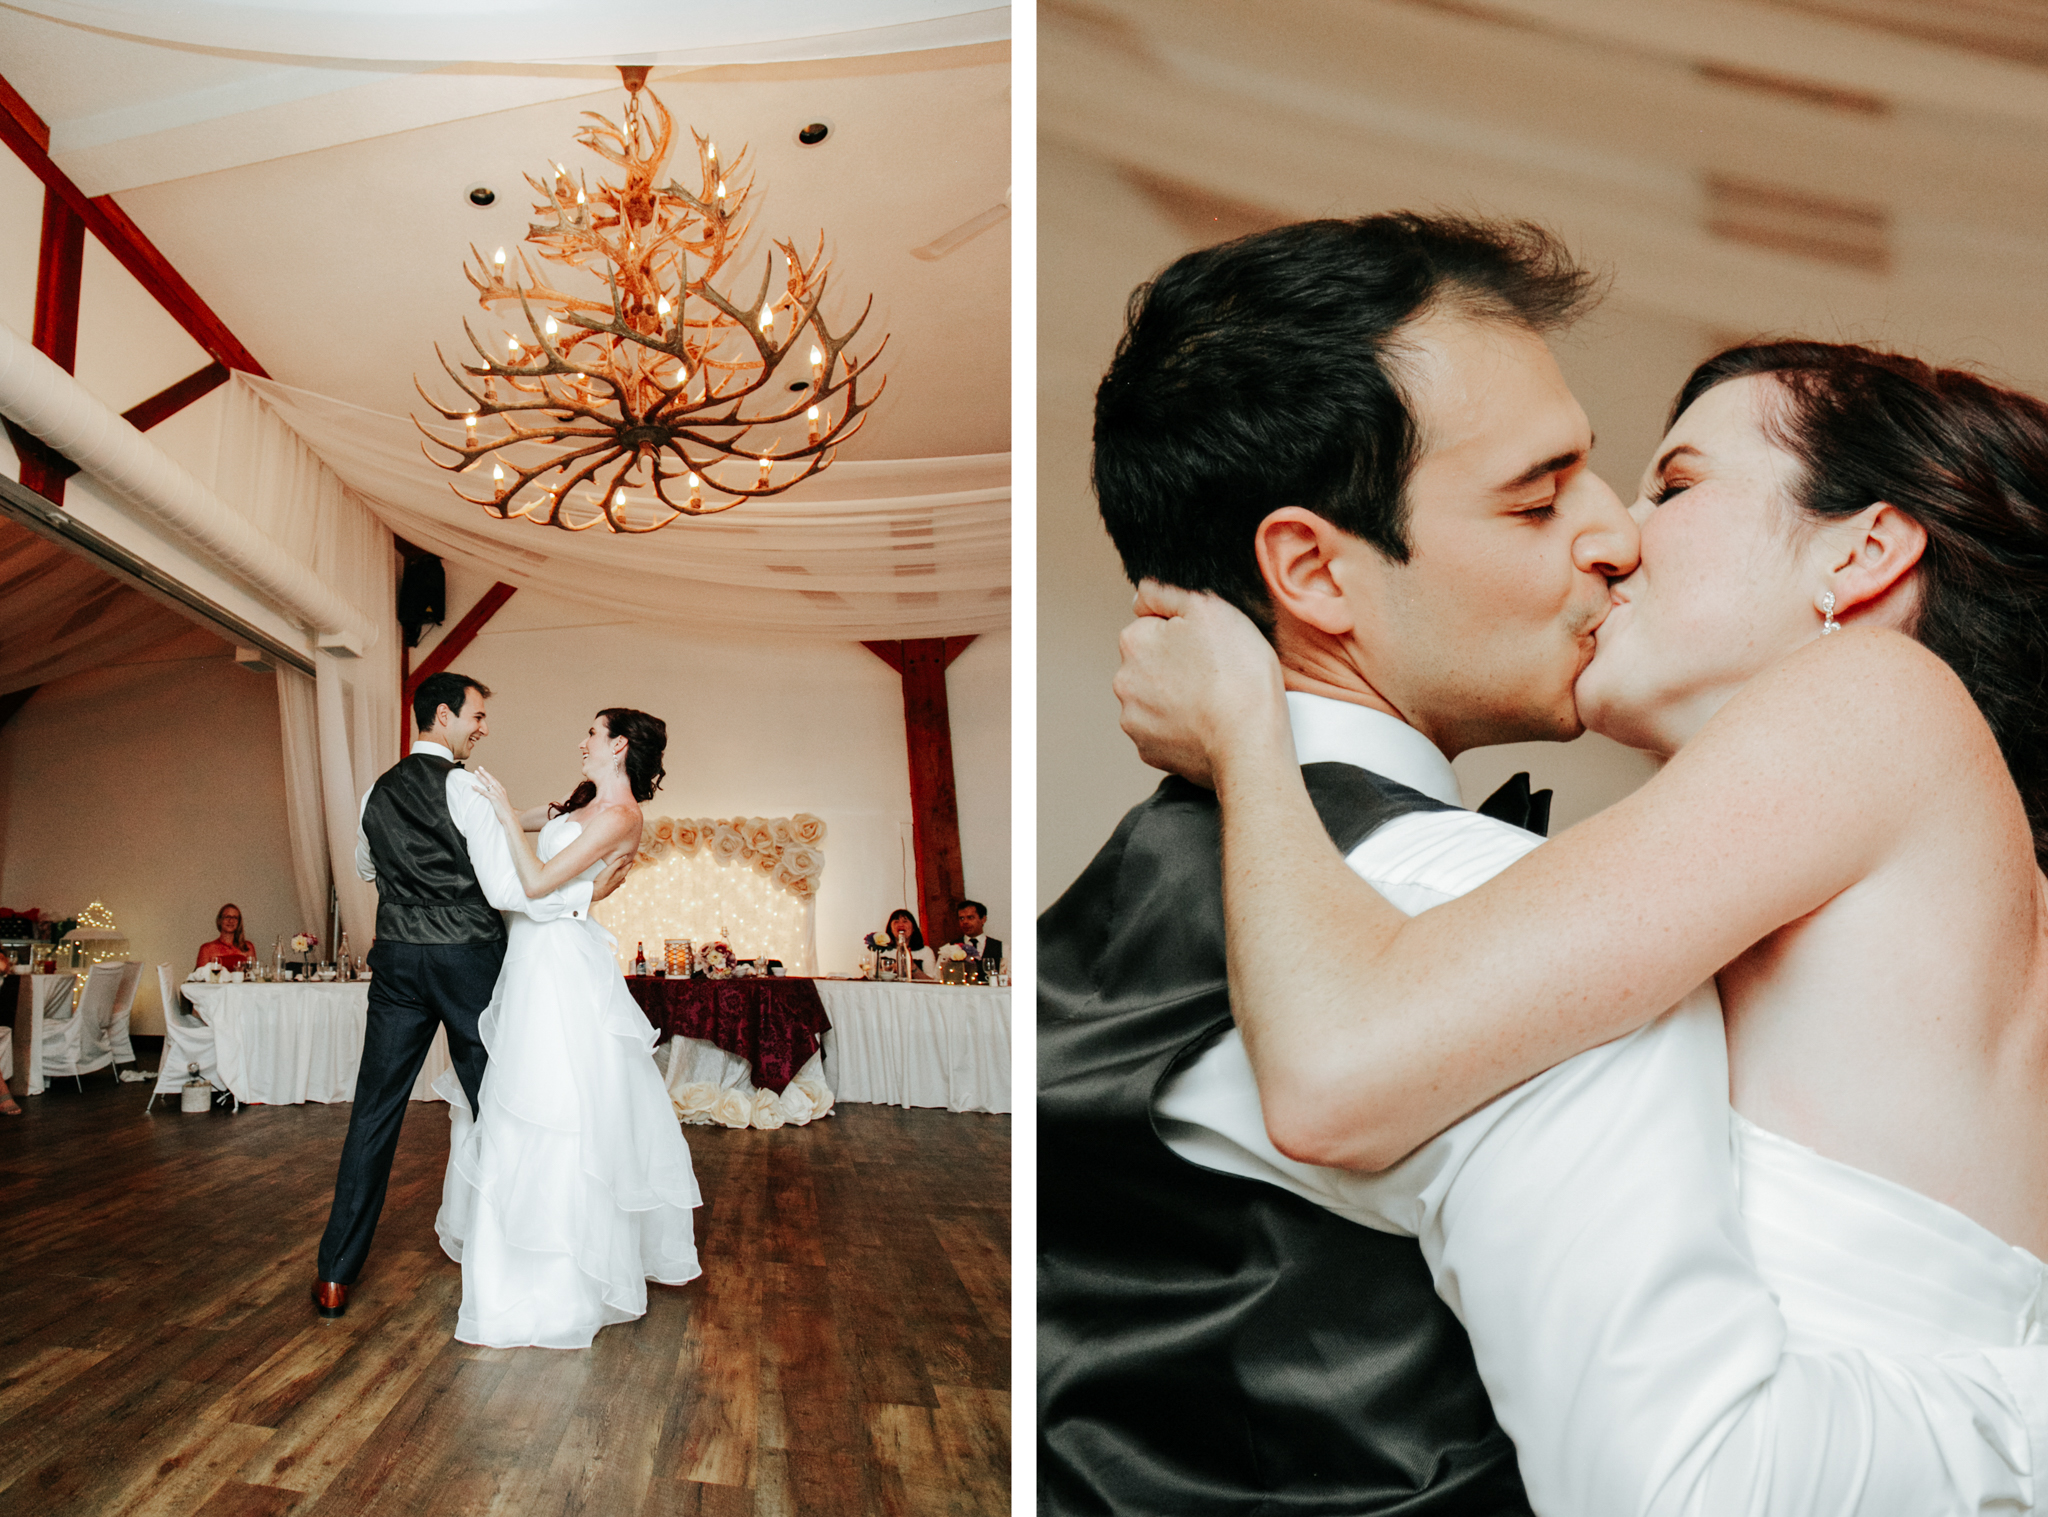 waterton-wedding-photography-love-and-be-loved-photographer-bayshore-inn-reception-image-photo-picture-48.jpg